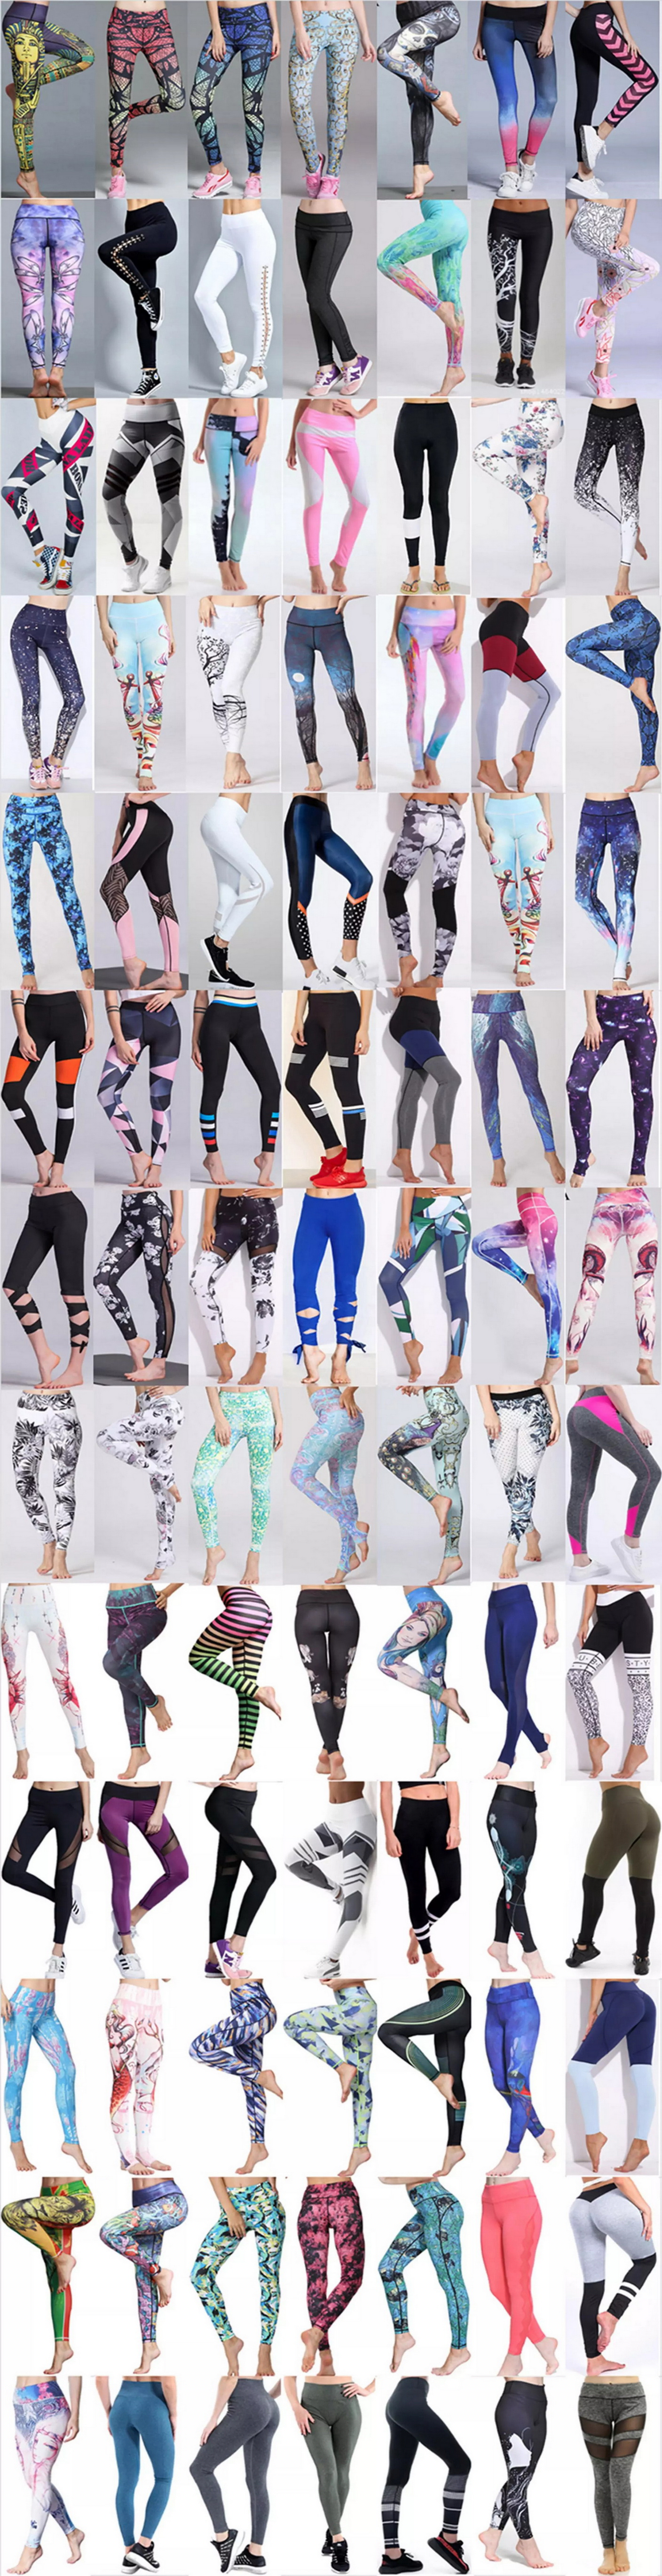 Digital Print Color Zebra Yoga Sports Leggings Yoga Pants for Women